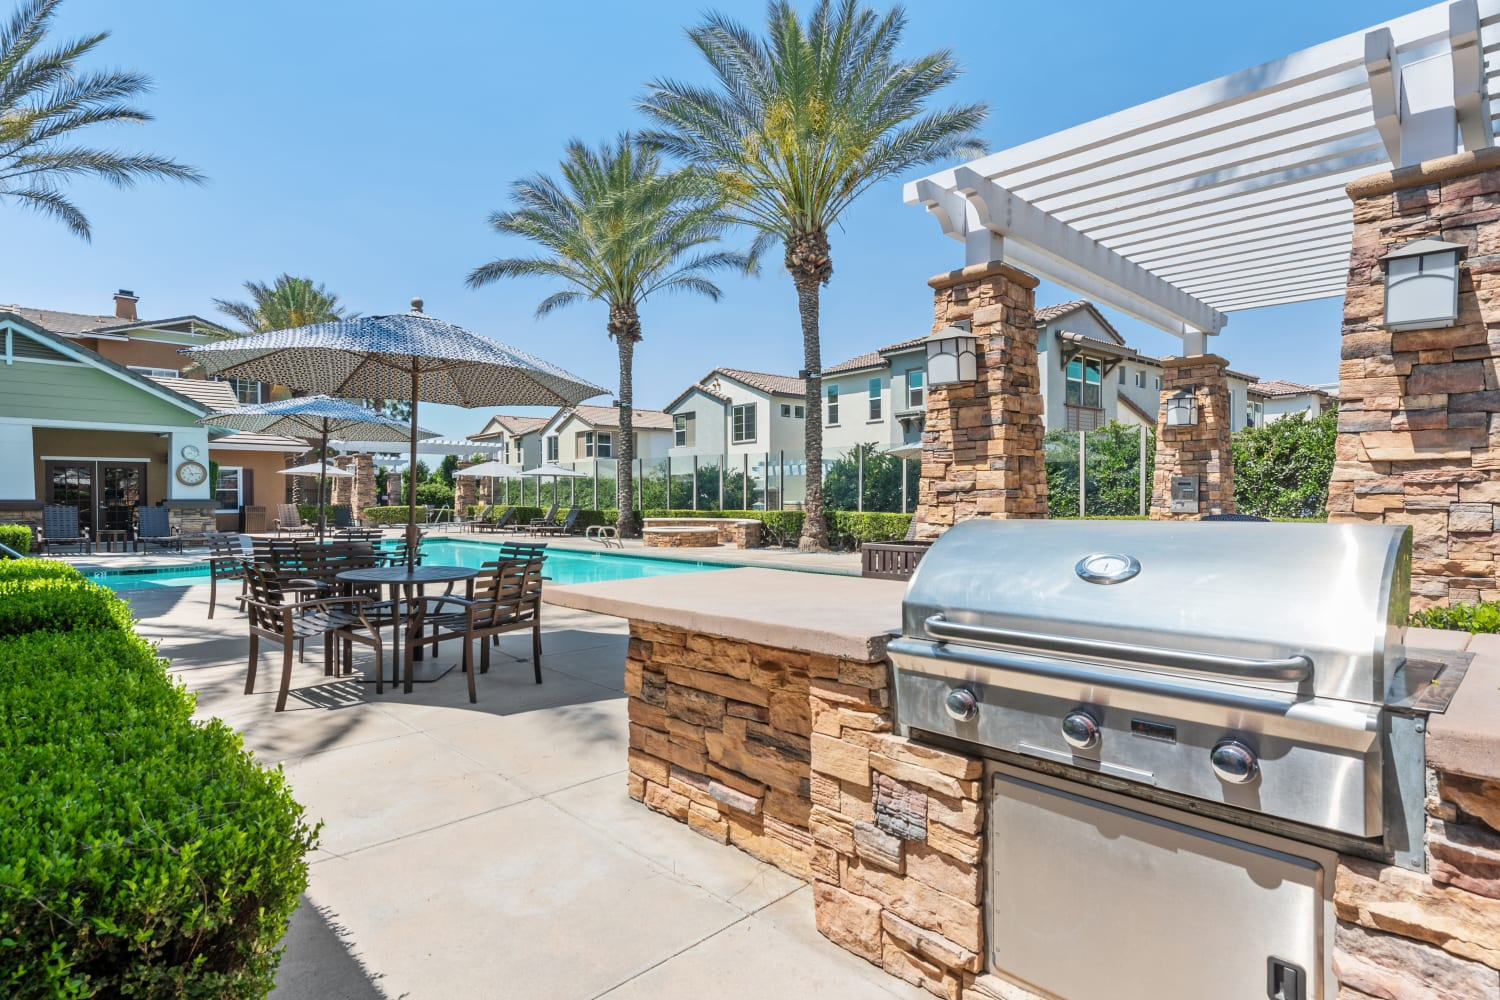 Our Apartments in Rancho Cucamonga, California offer a BBQ Area